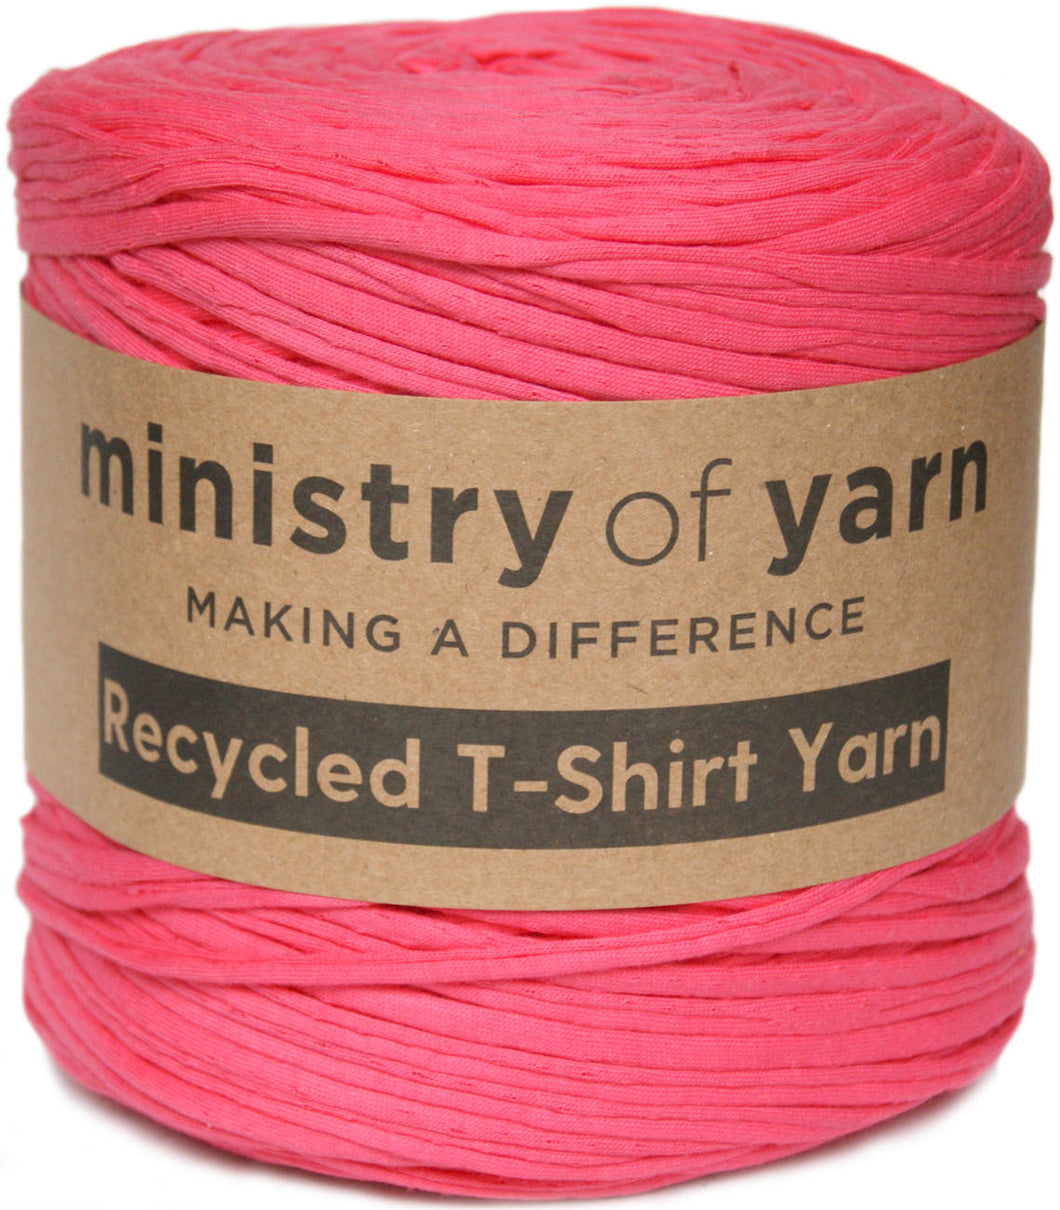 Light bright pink recycled t-shirt yarn Australia